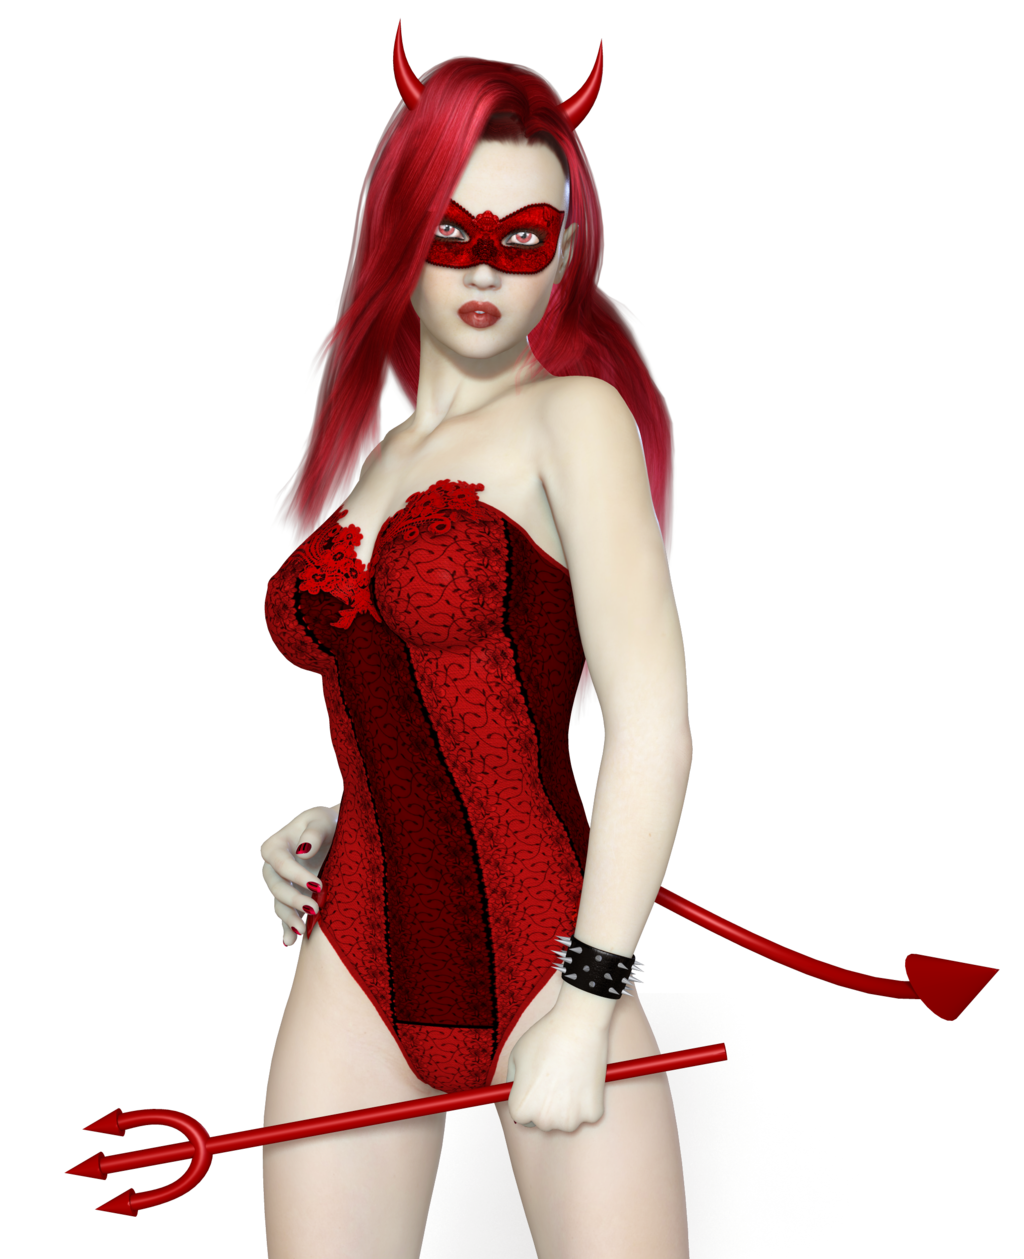 She Devil by Roy3D She Devil by Roy3D - She Devil PNG